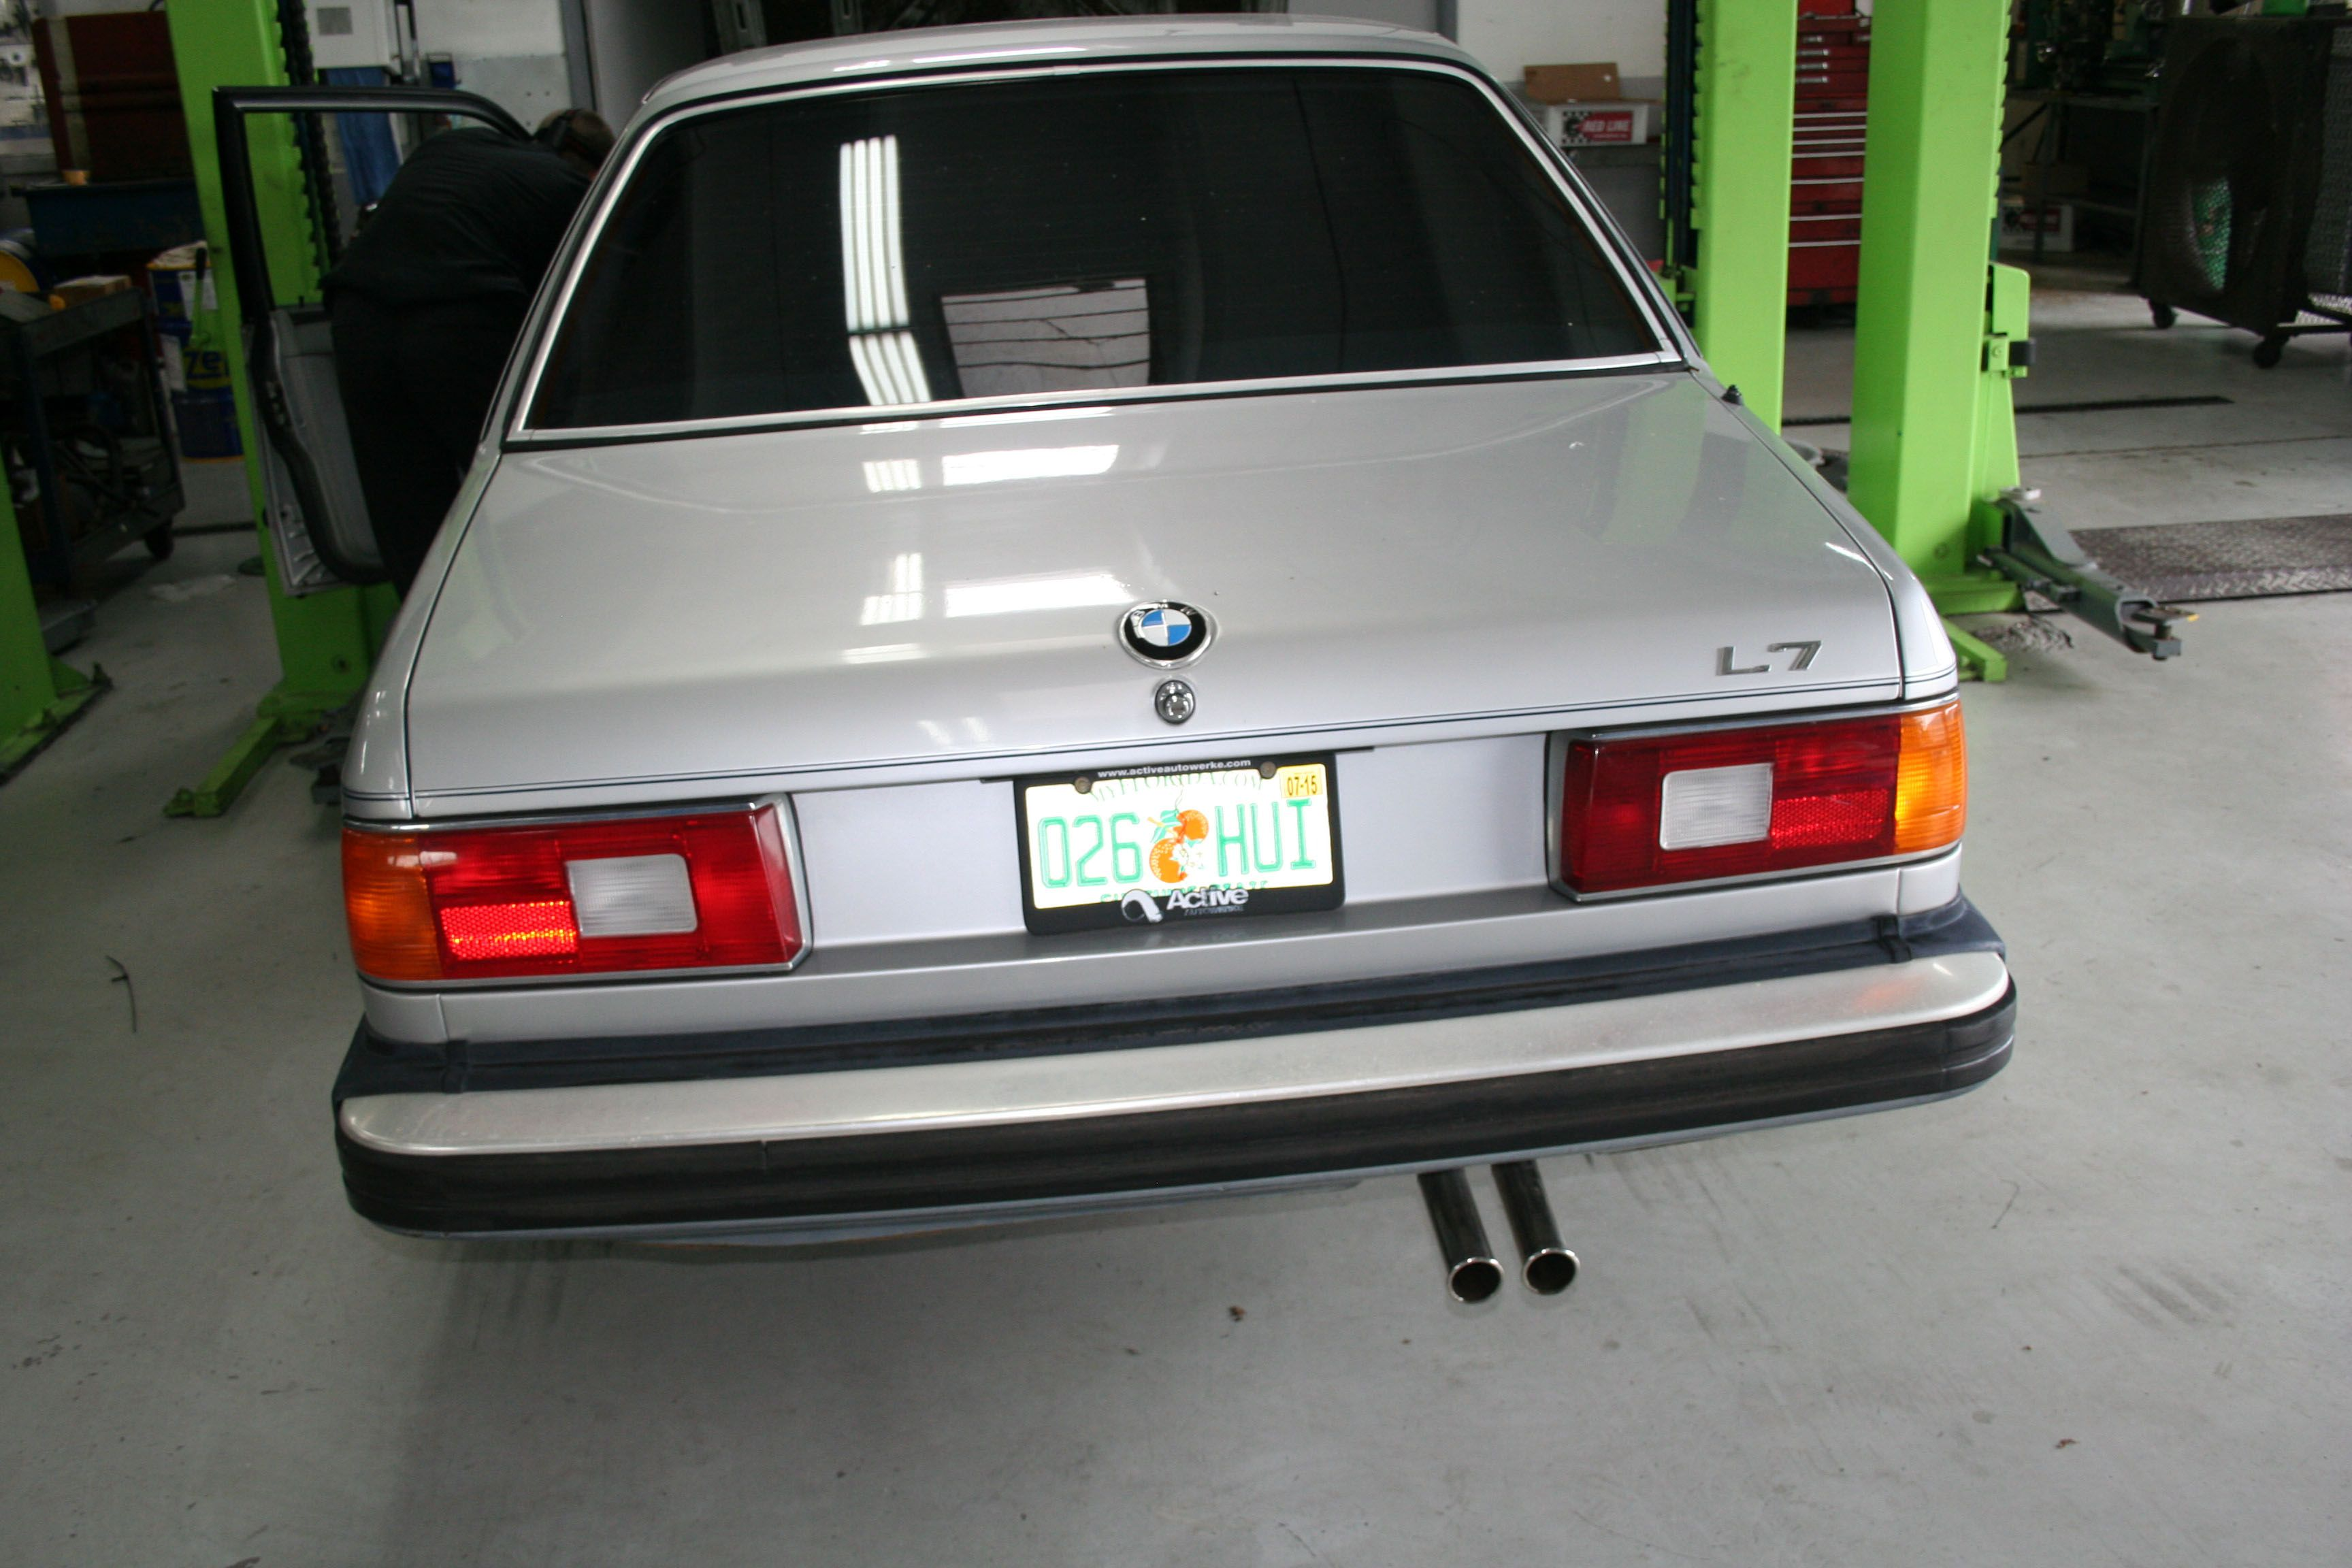 BMW E23 L7. Definitely a classic. Having some work done